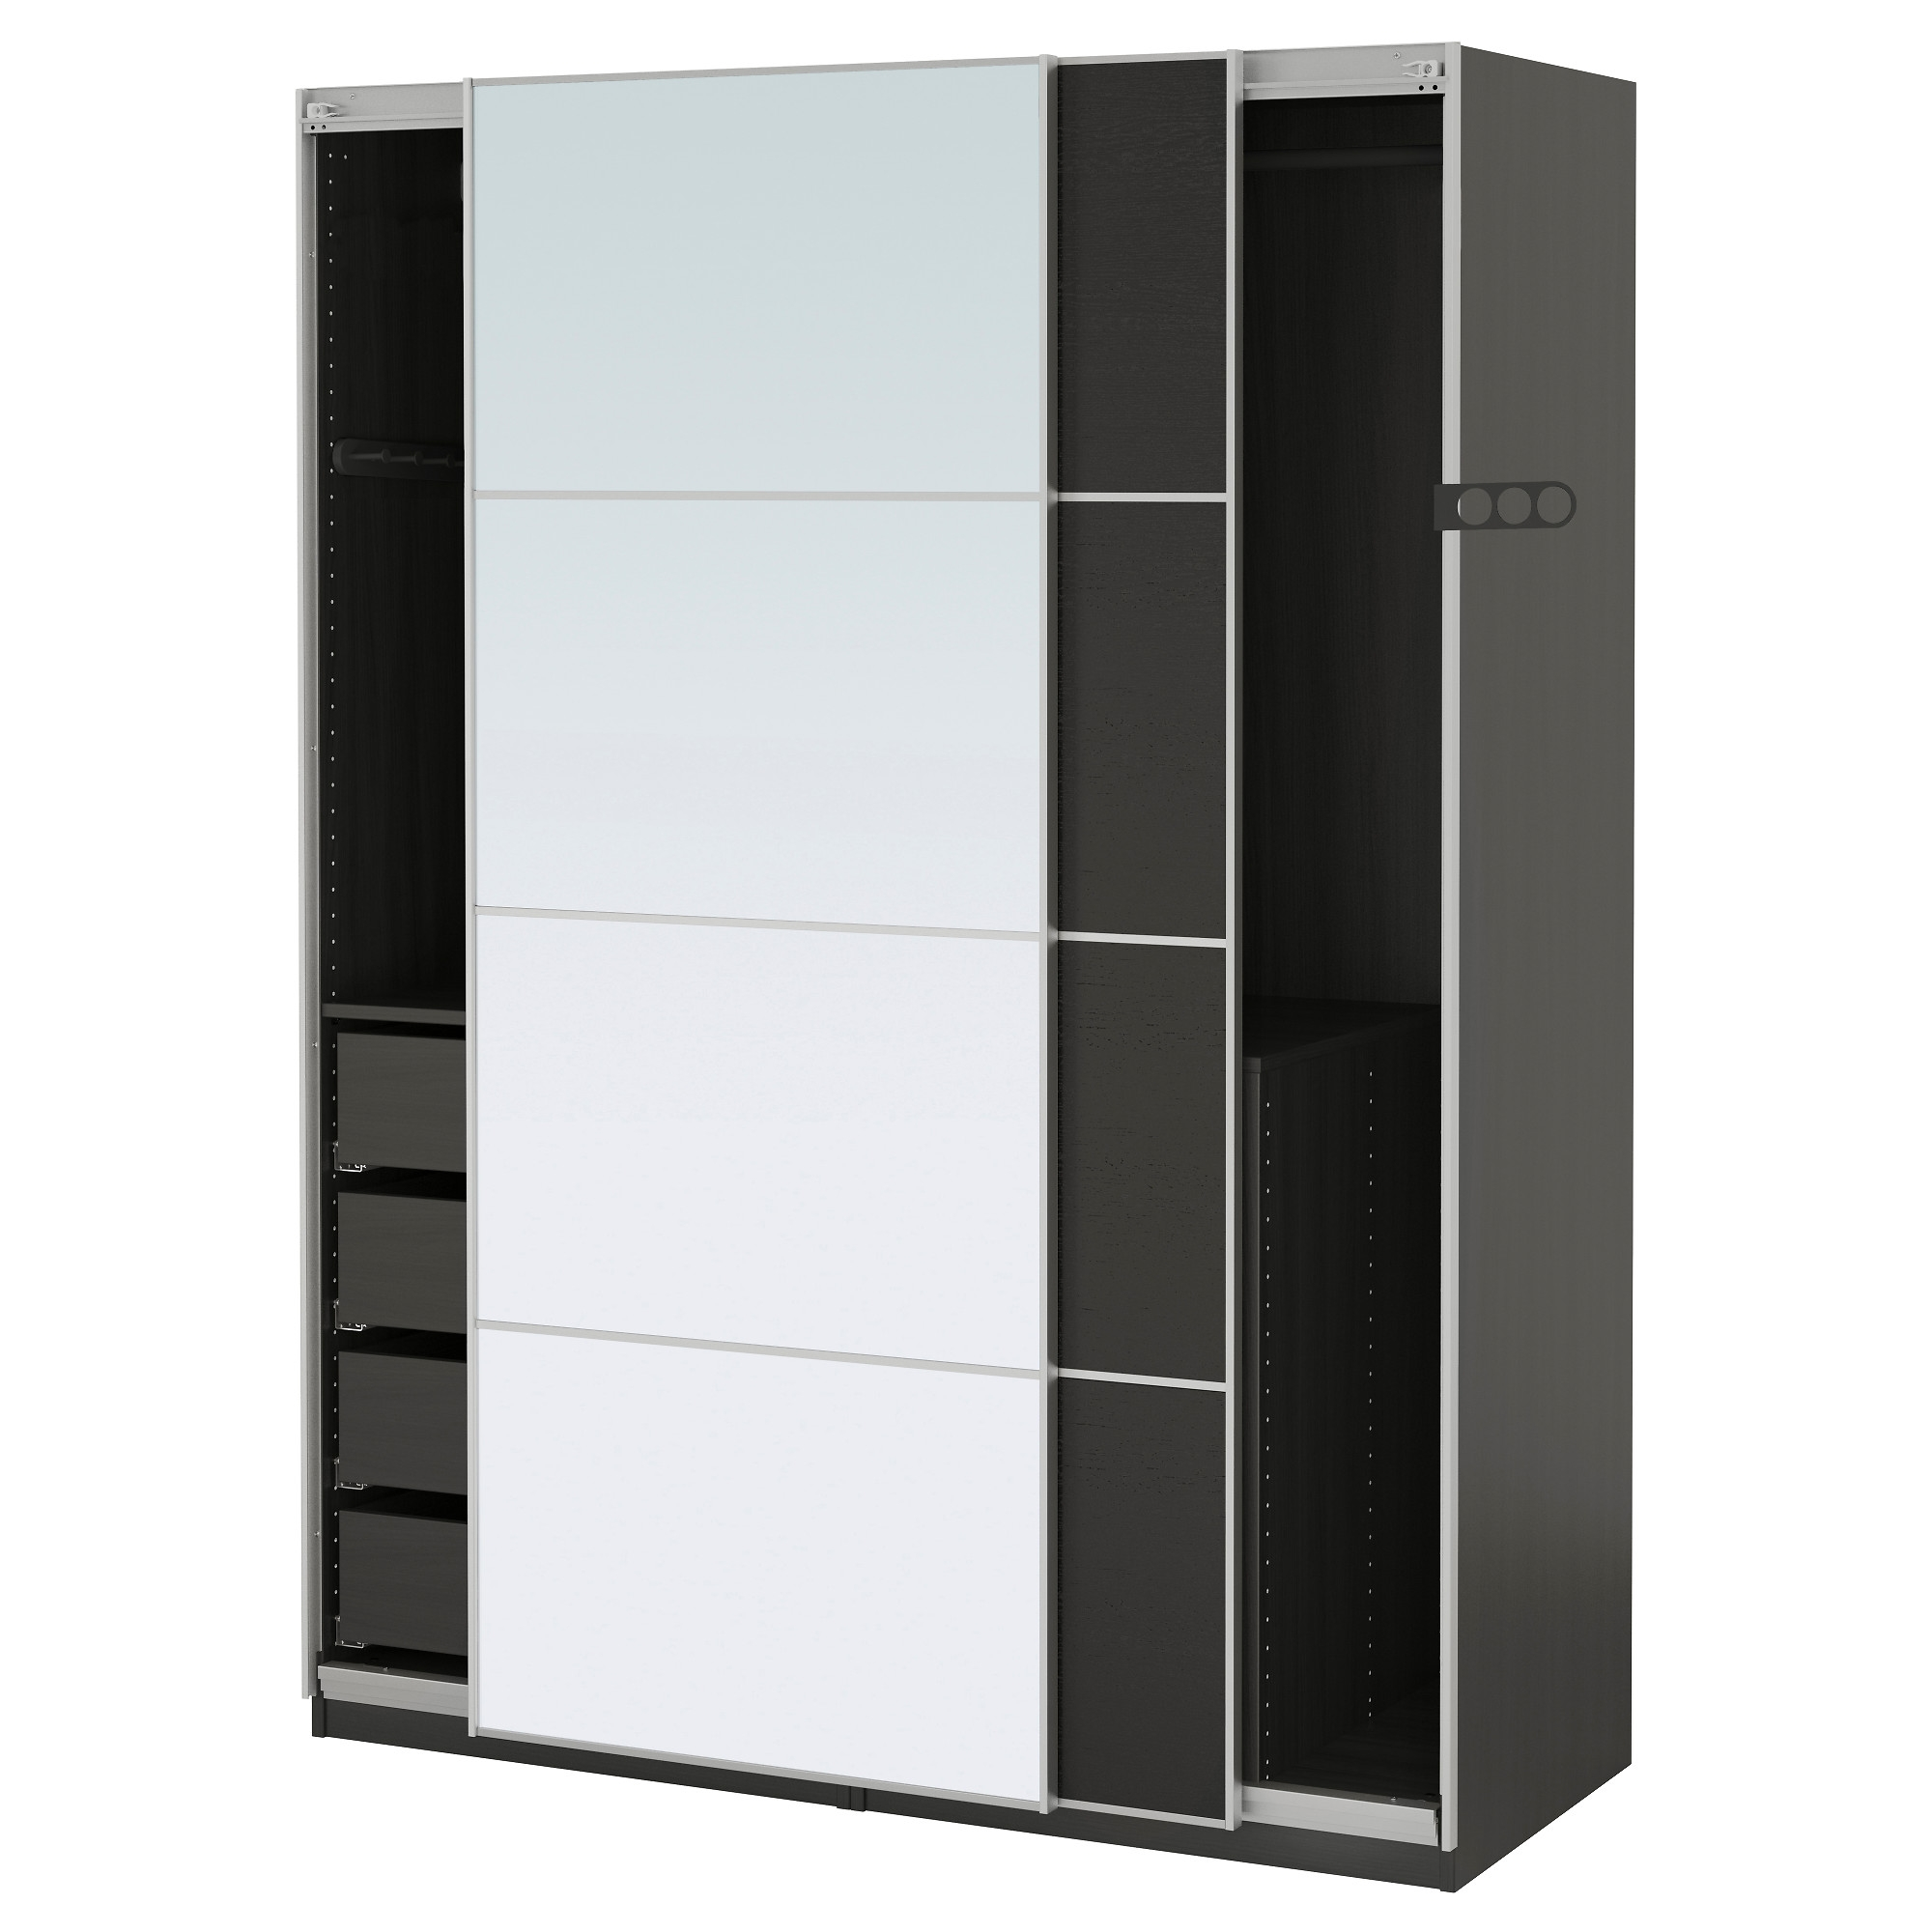 Wardrobes Pax System Ikea Pertaining To Wardrobe With Shelves And Drawers (View 14 of 15)